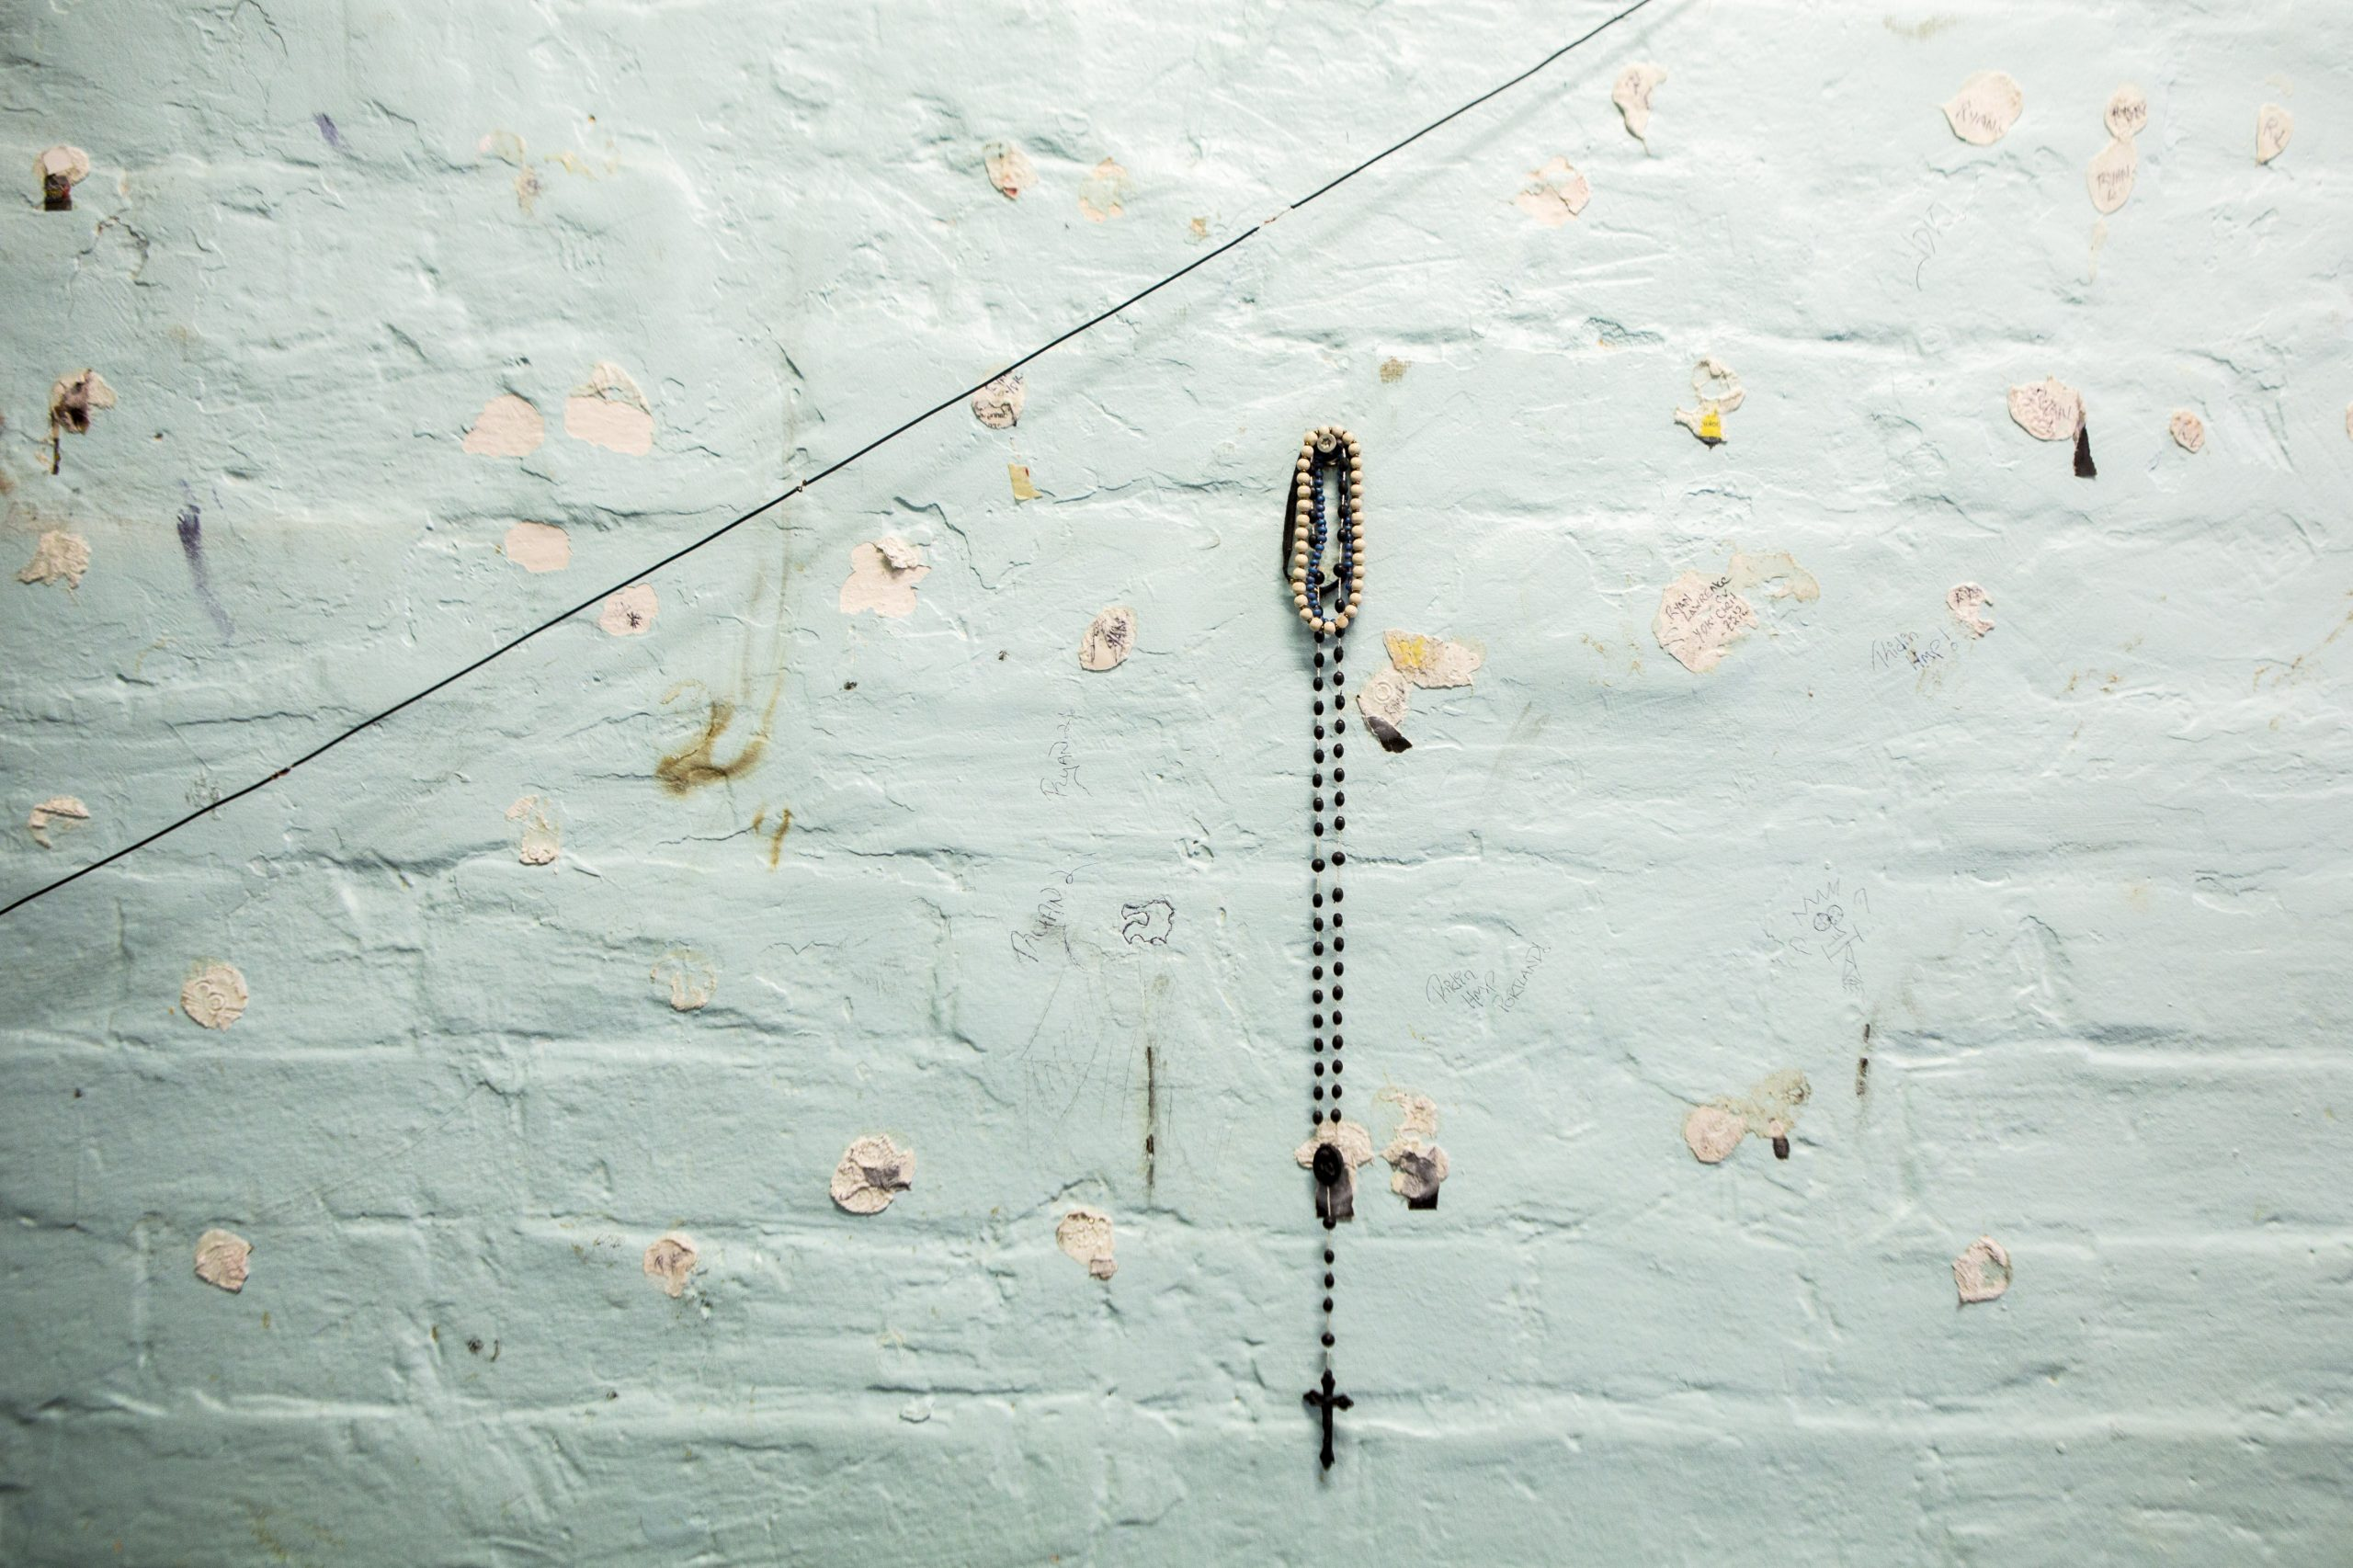 A crucifix hangs on the wall of a cell on Benbow wing inside HMP/YOI Portland, a resettlement prison with a capacity for 530 prisoners. © prisonimage.org. Any image use must be agreed first. All images must be credited.